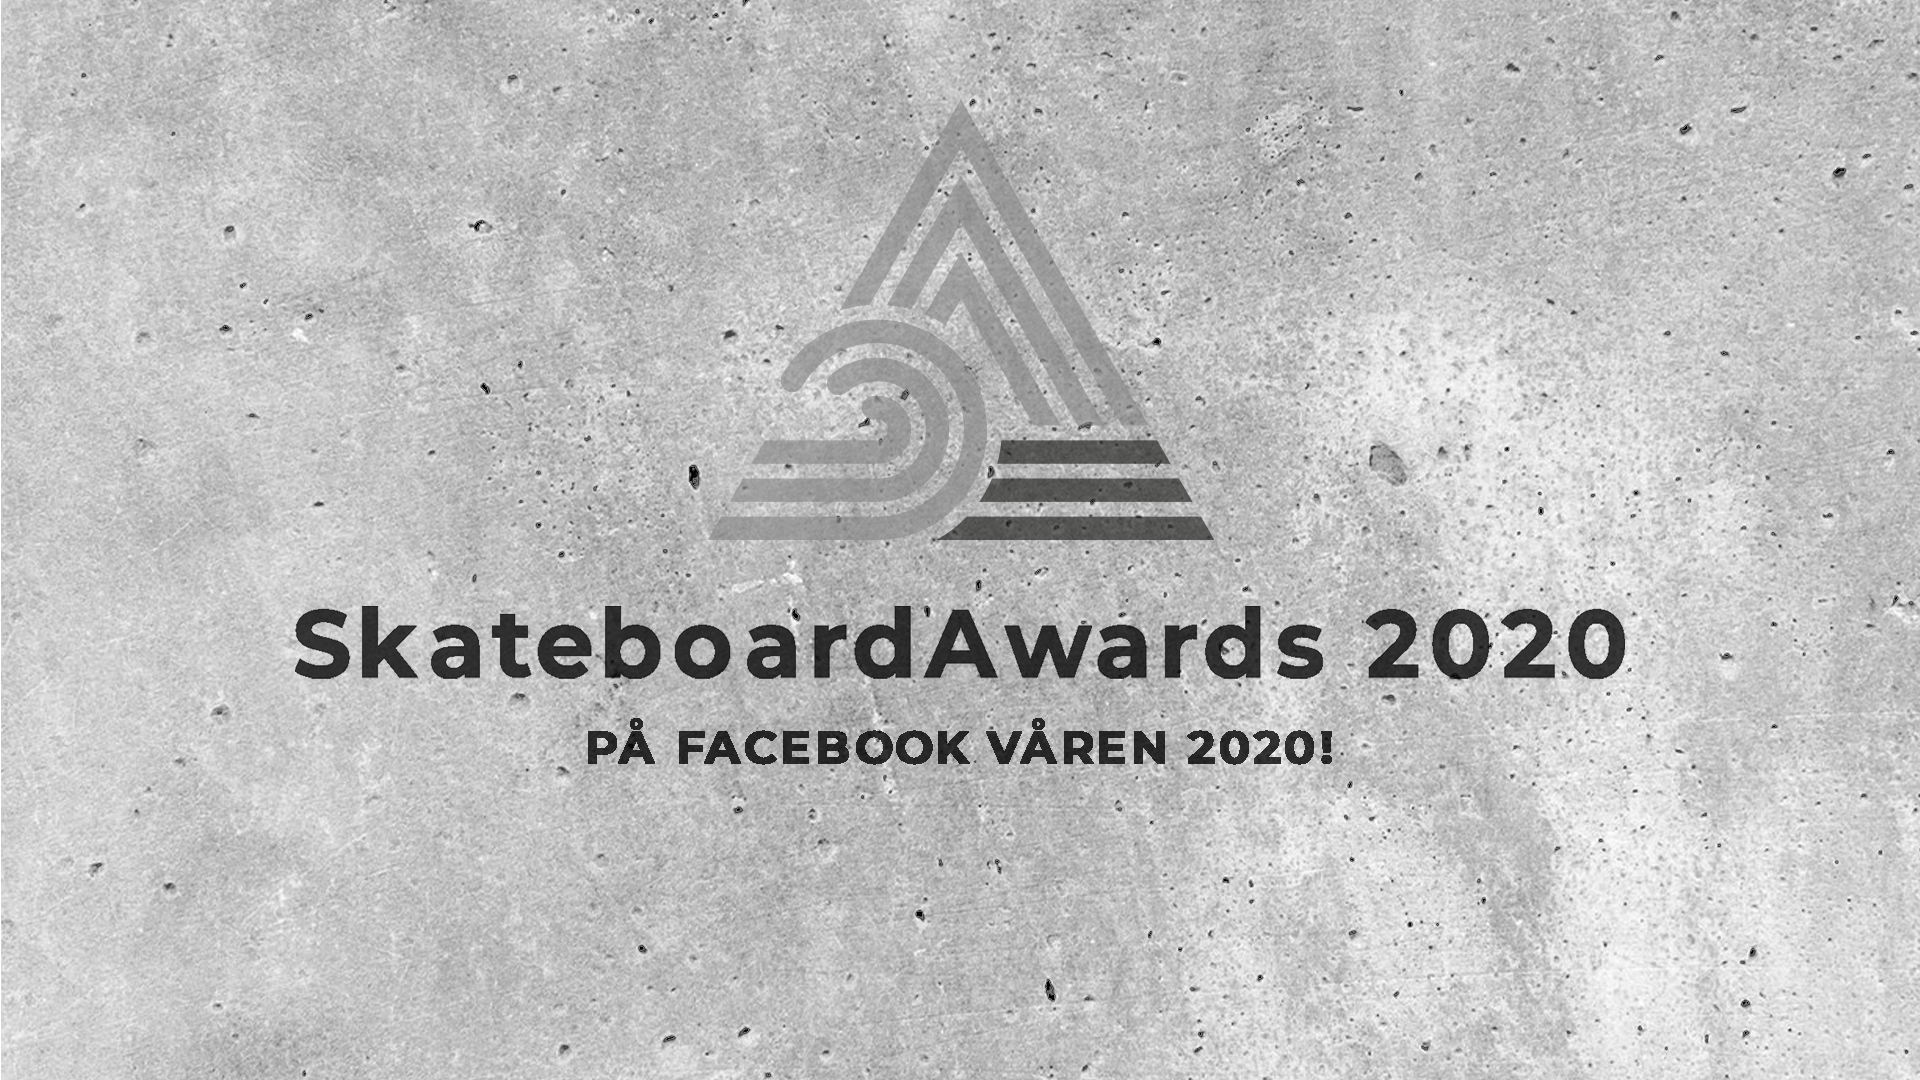 SkateboardAwards 2020